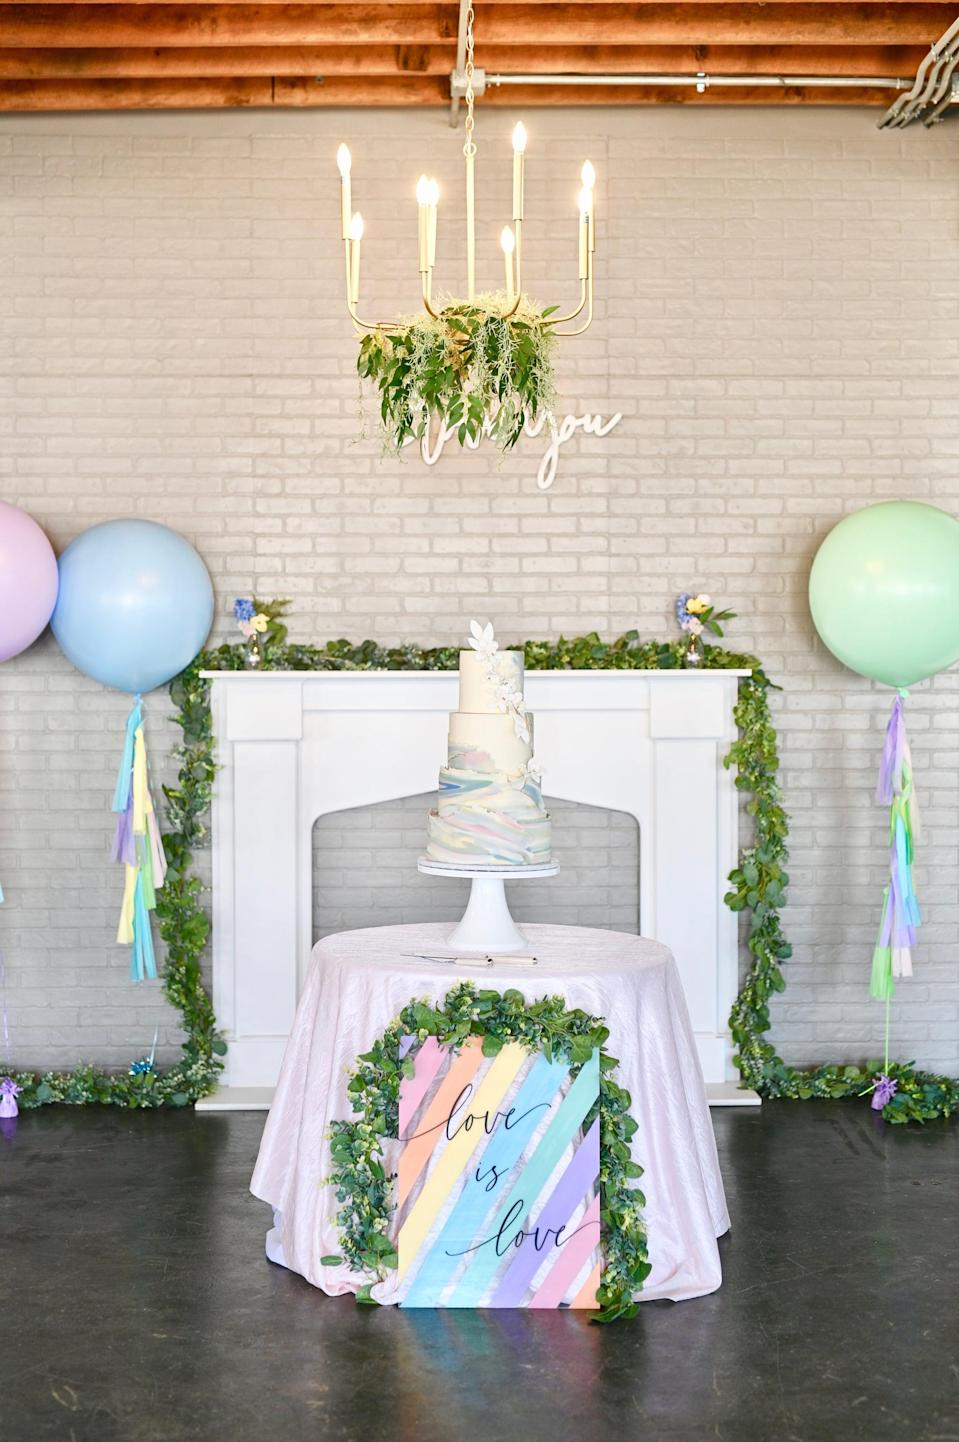 """<p>Give your venue a touch of the great outdoors when you add leafy green garland to the space. Hang it from the lights, across the mantel, and on different signs to make it stand out. The best part about this <a class=""""link rapid-noclick-resp"""" href=""""https://www.popsugar.co.uk/tag/DIY"""" rel=""""nofollow noopener"""" target=""""_blank"""" data-ylk=""""slk:DIY"""">DIY</a> idea is that not only is garland affordable, but it also comes in a lot of variations (think flowers, tassels, beads, and more).</p>"""